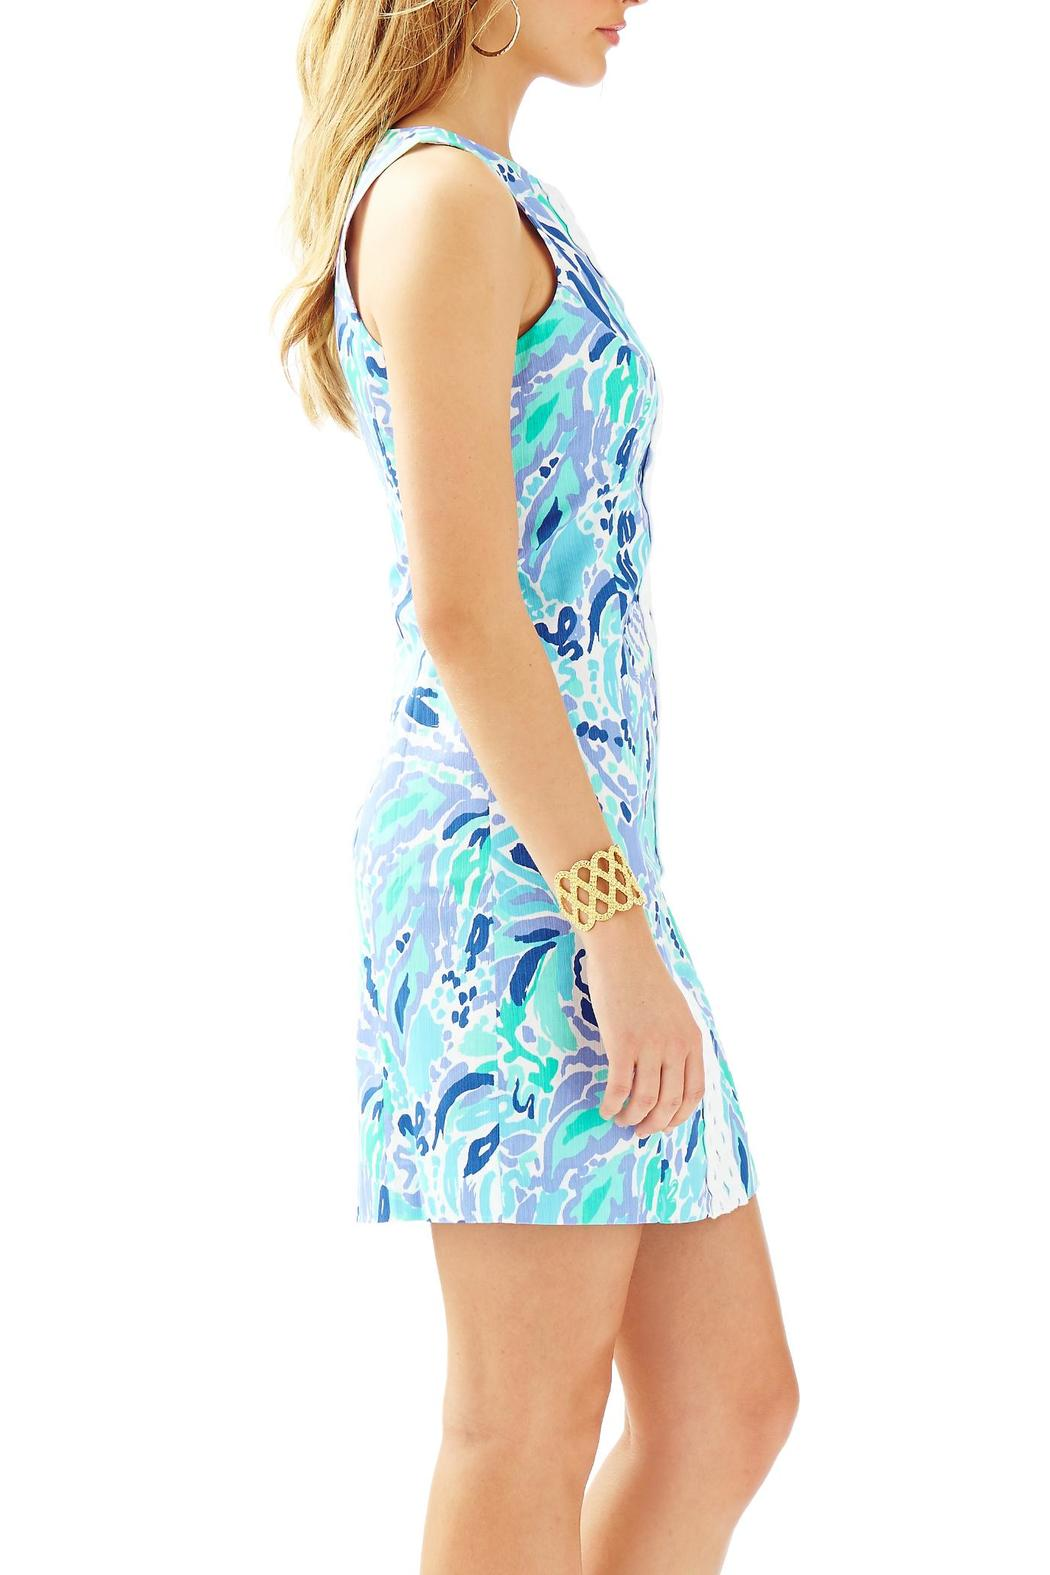 66bc23ed1fcaed Lilly Pulitzer Ryder Shift Dress from Sandestin Golf and Beach ...